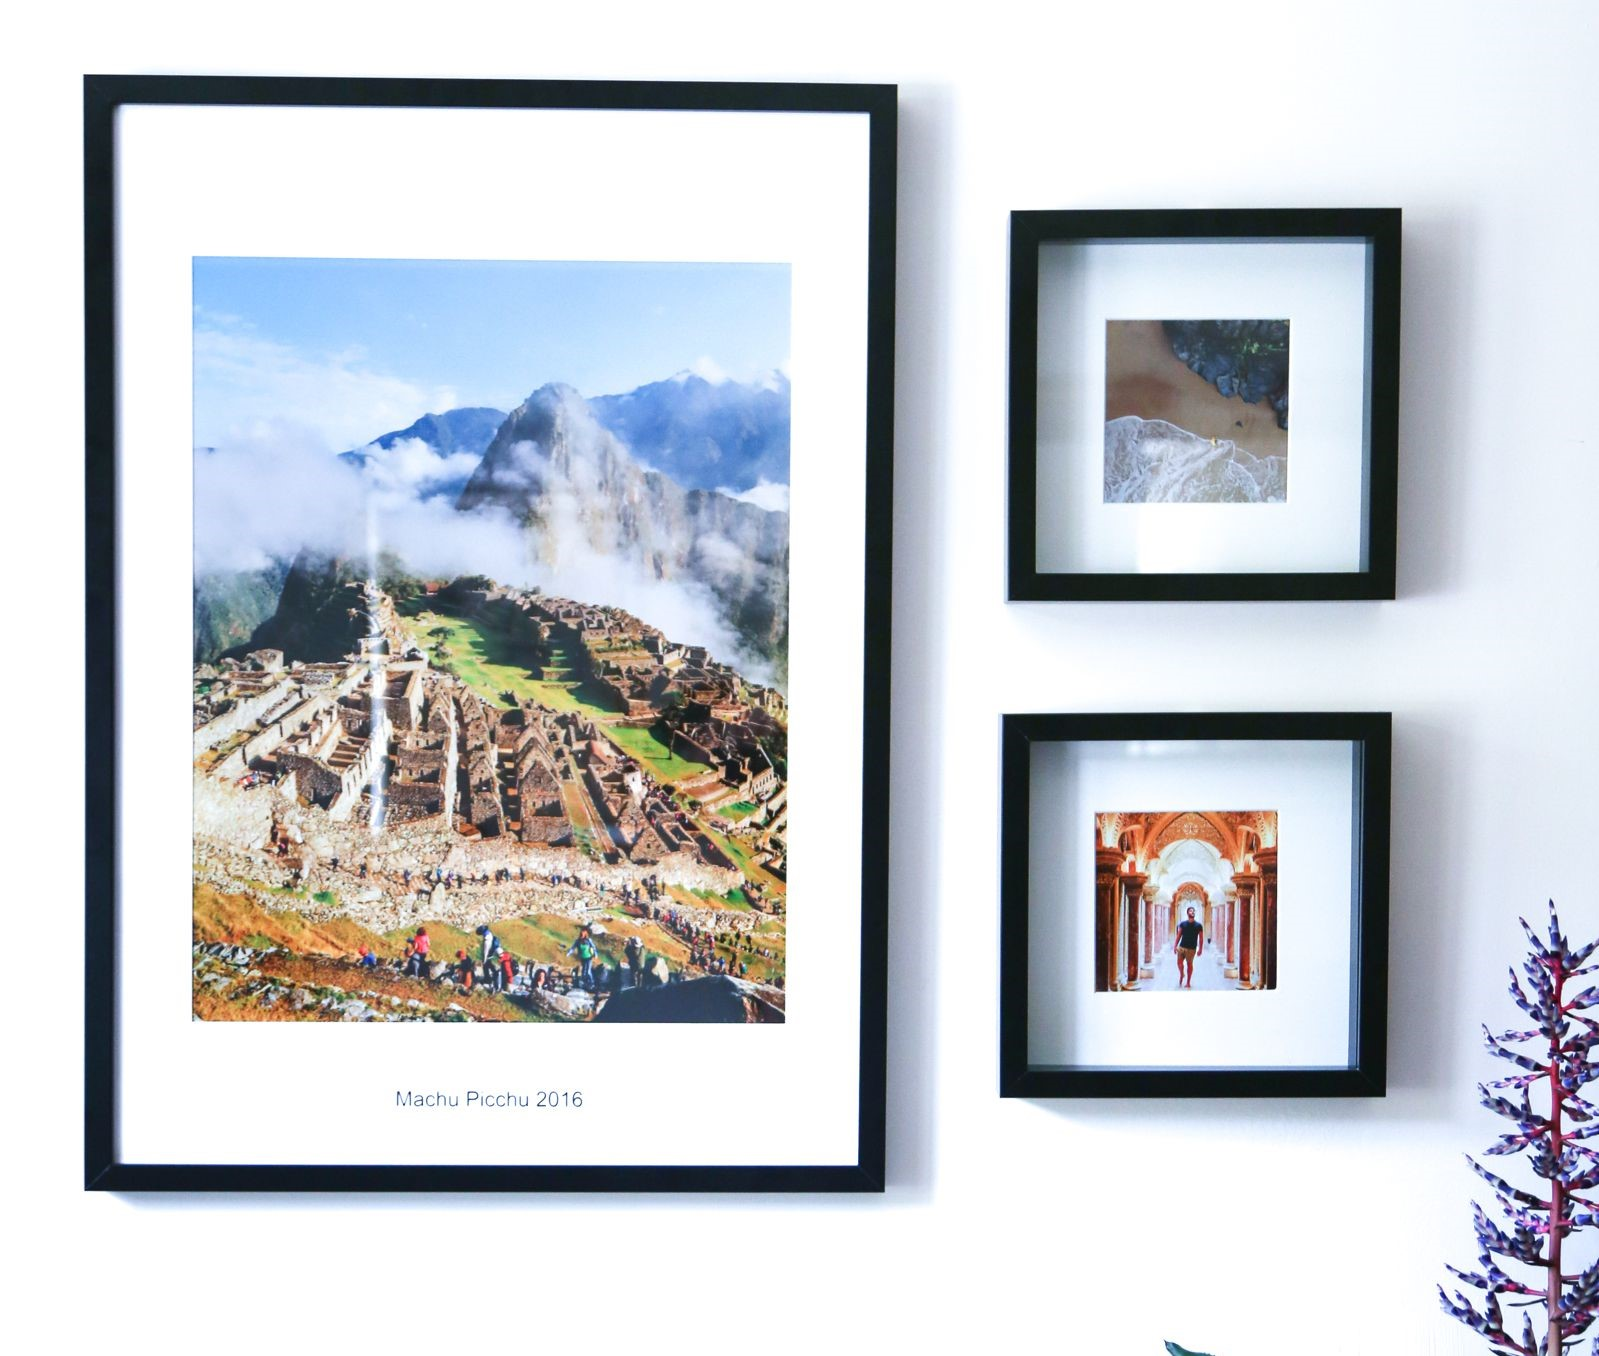 Wall-Snaps-Photos-Hand-Luggage-Only-Blog_-4-1